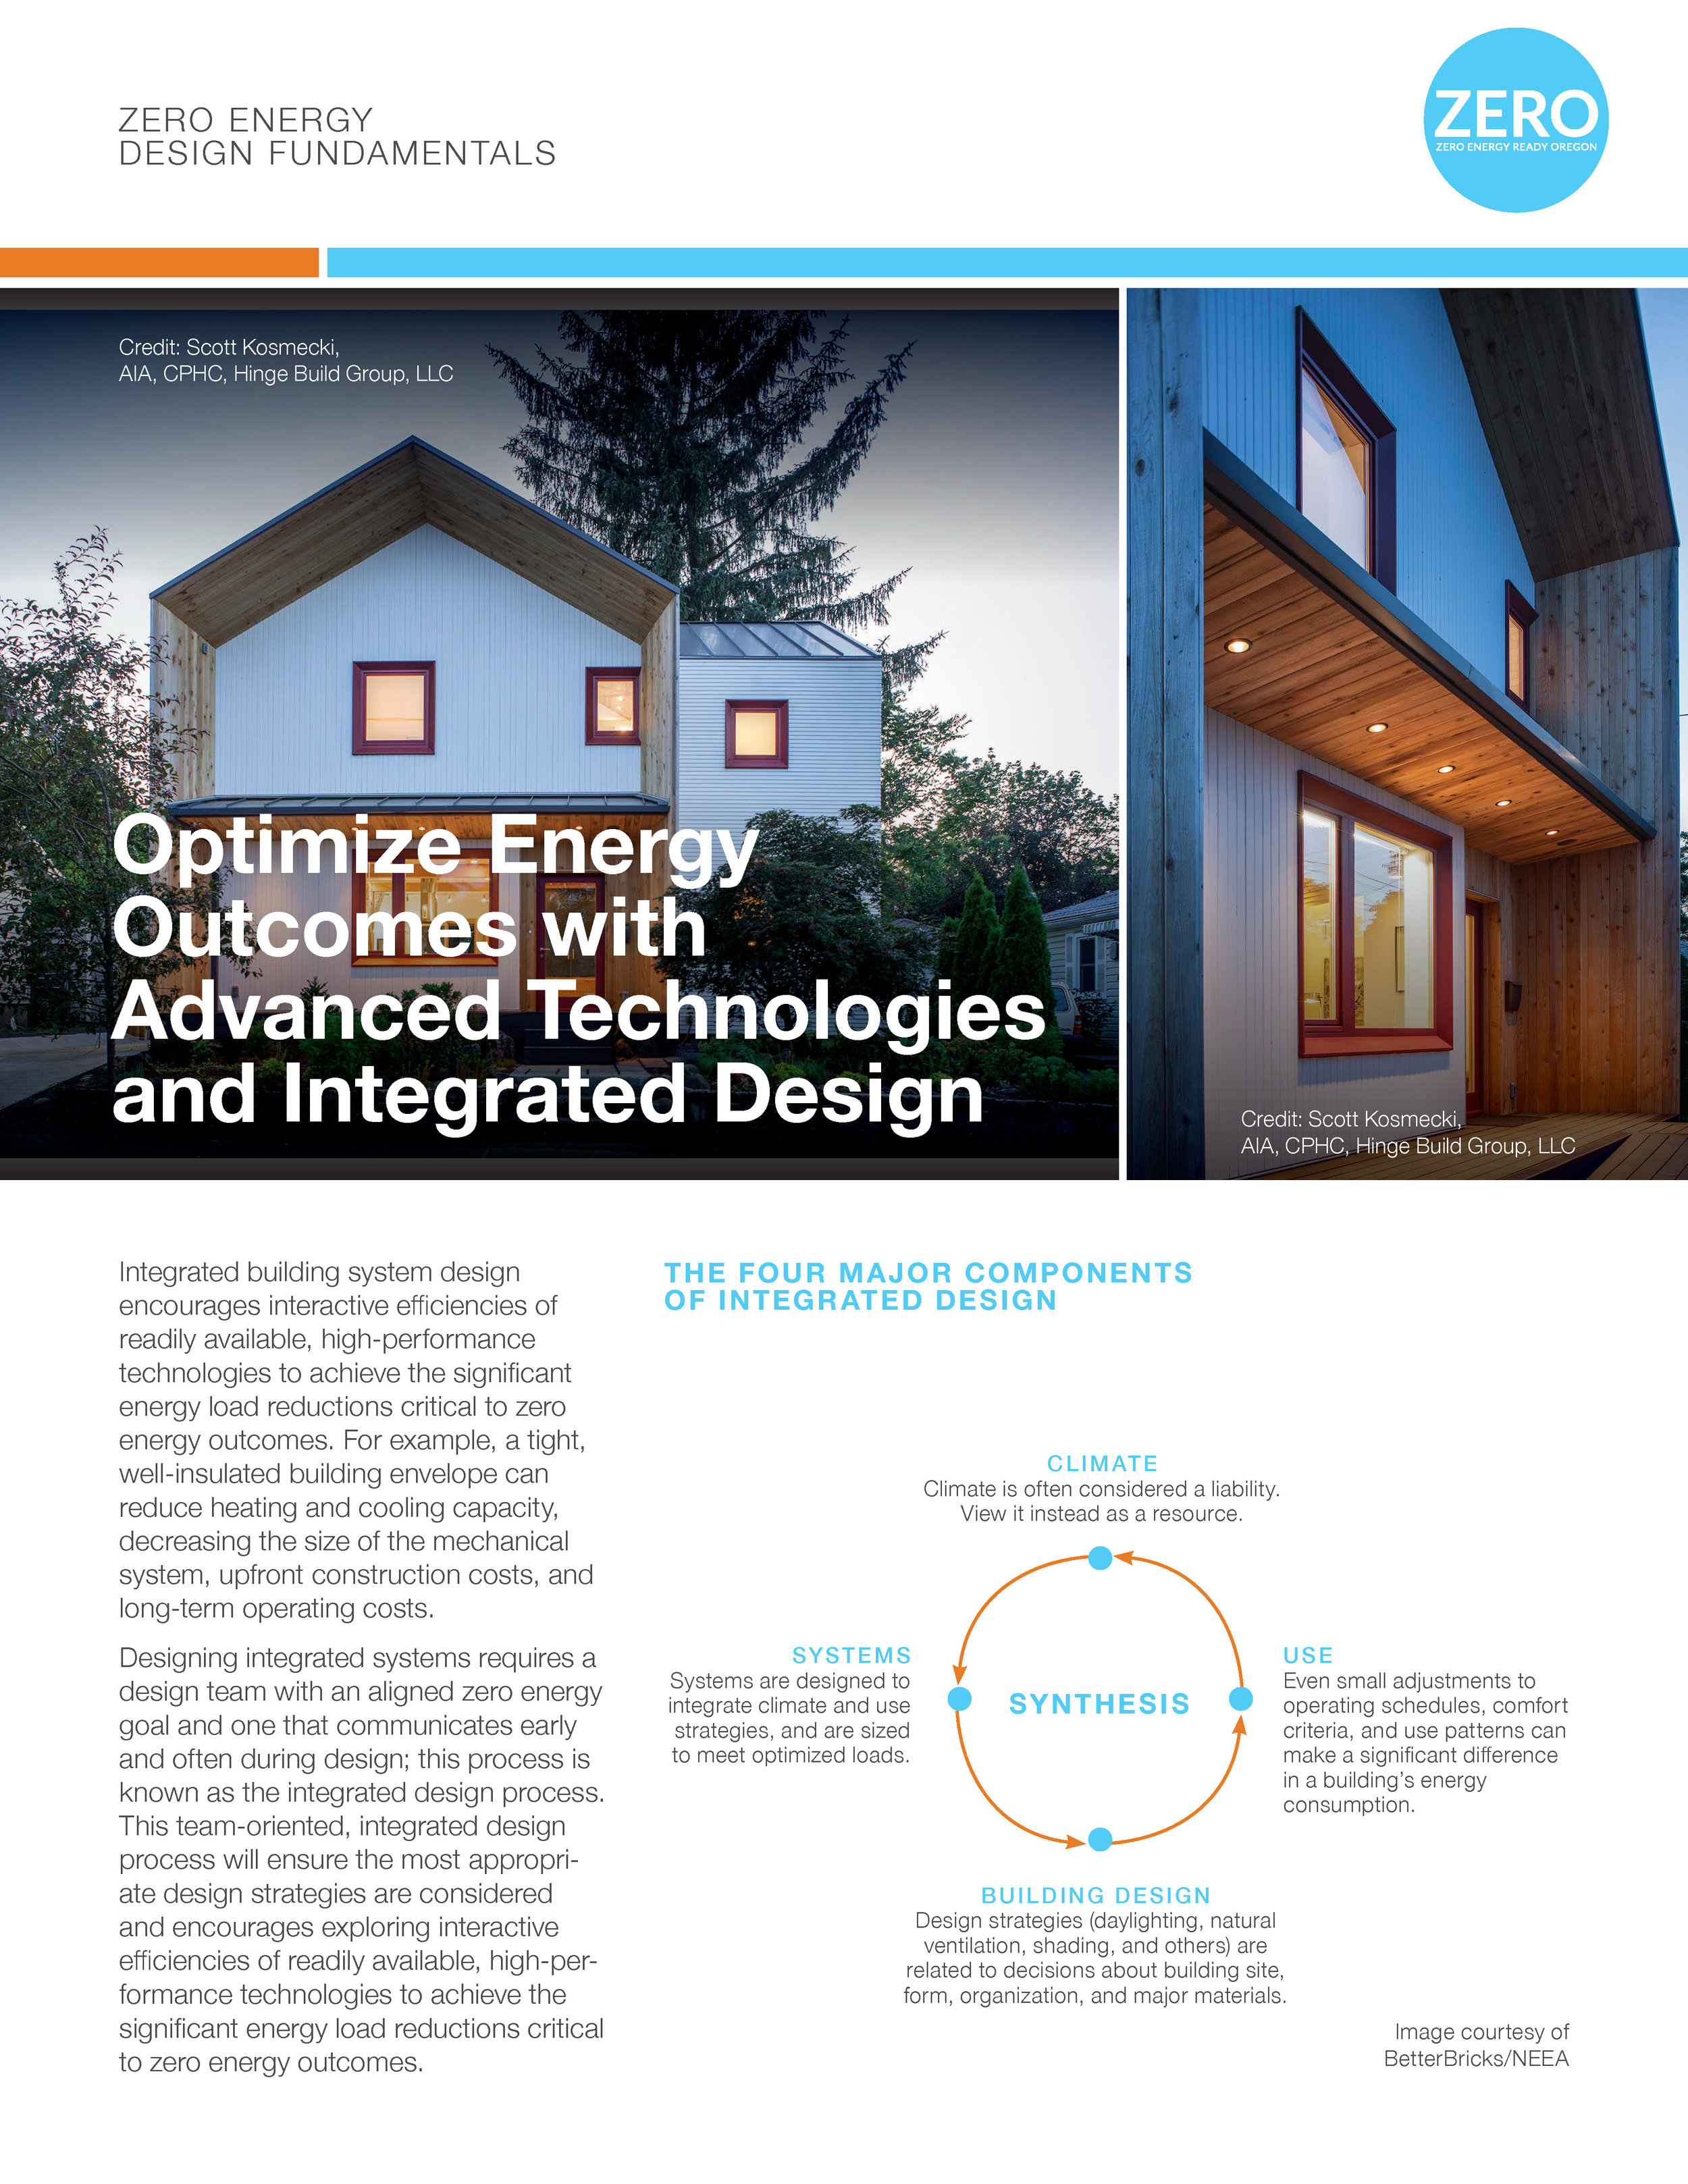 Zero Energy Design Fundamentals Fact Sheet - Integrated building system design encourages interactive efficiencies of readily available, high-performance technologies to achieve the significant energy load reductions critical to zero energy outcomes.